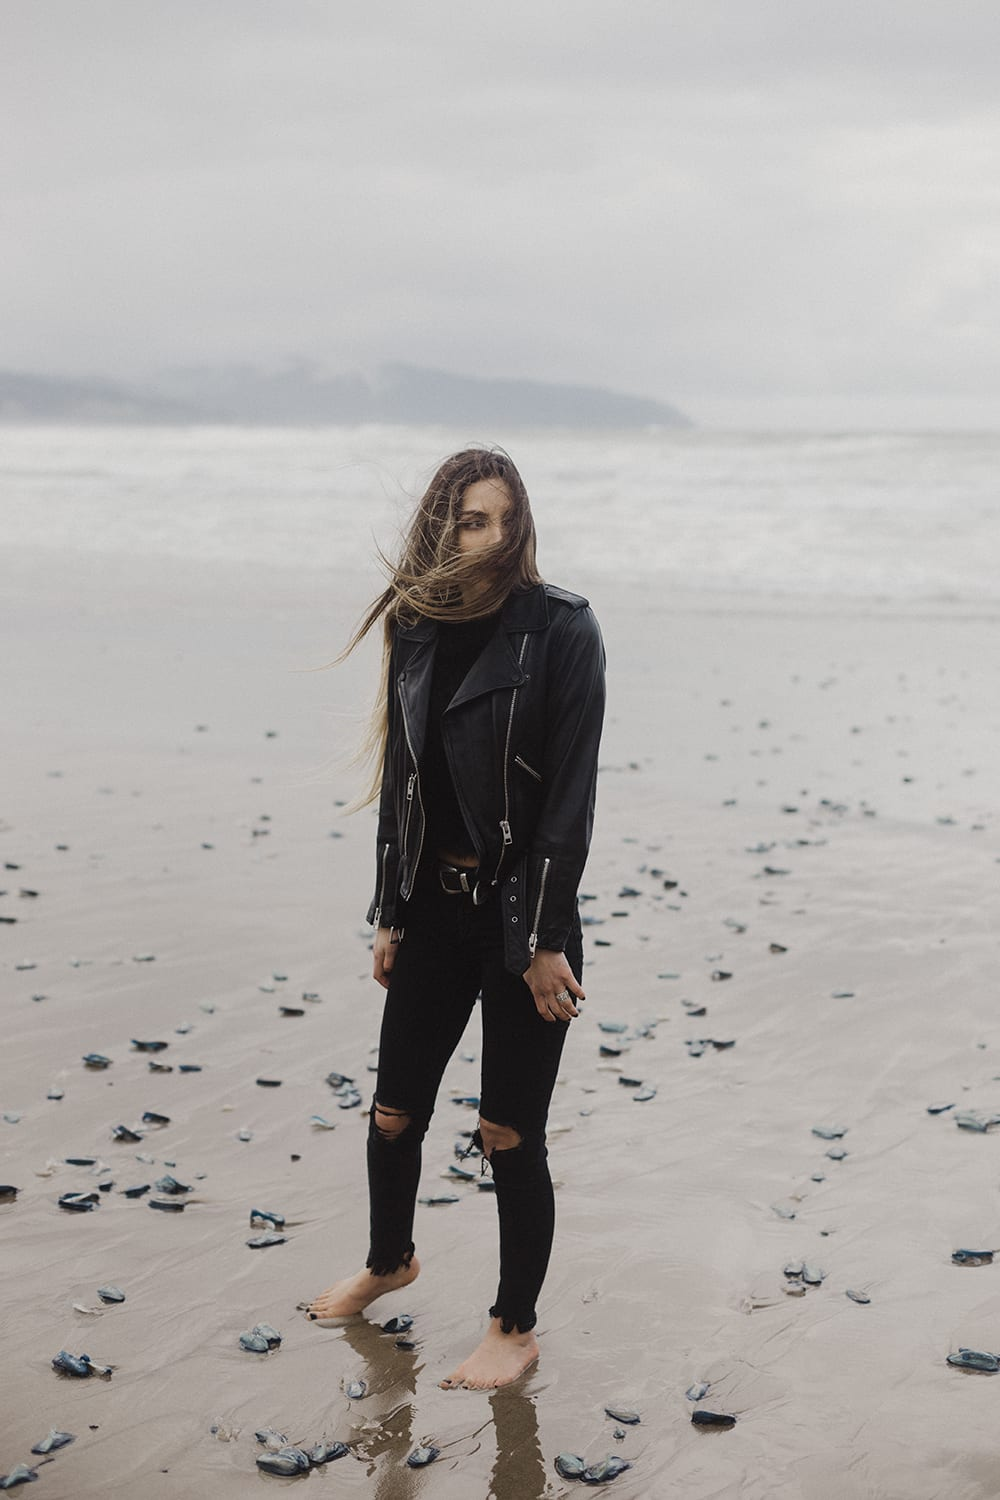 girl walking on beach with hair blowing